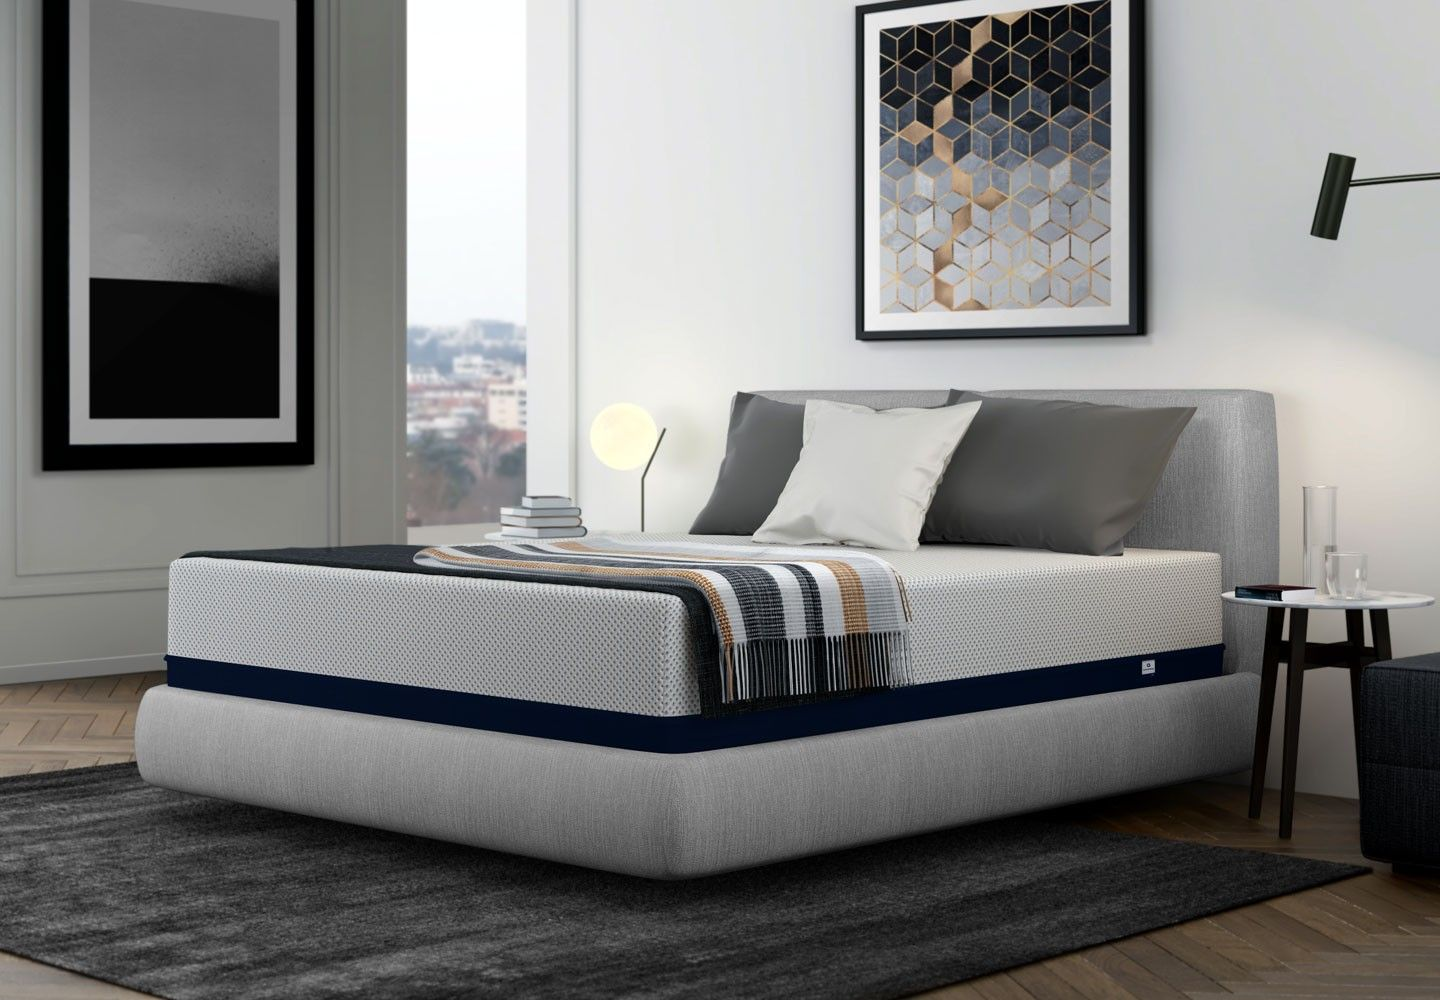 complete review of sweet zzz mattress for 2018 promo code below